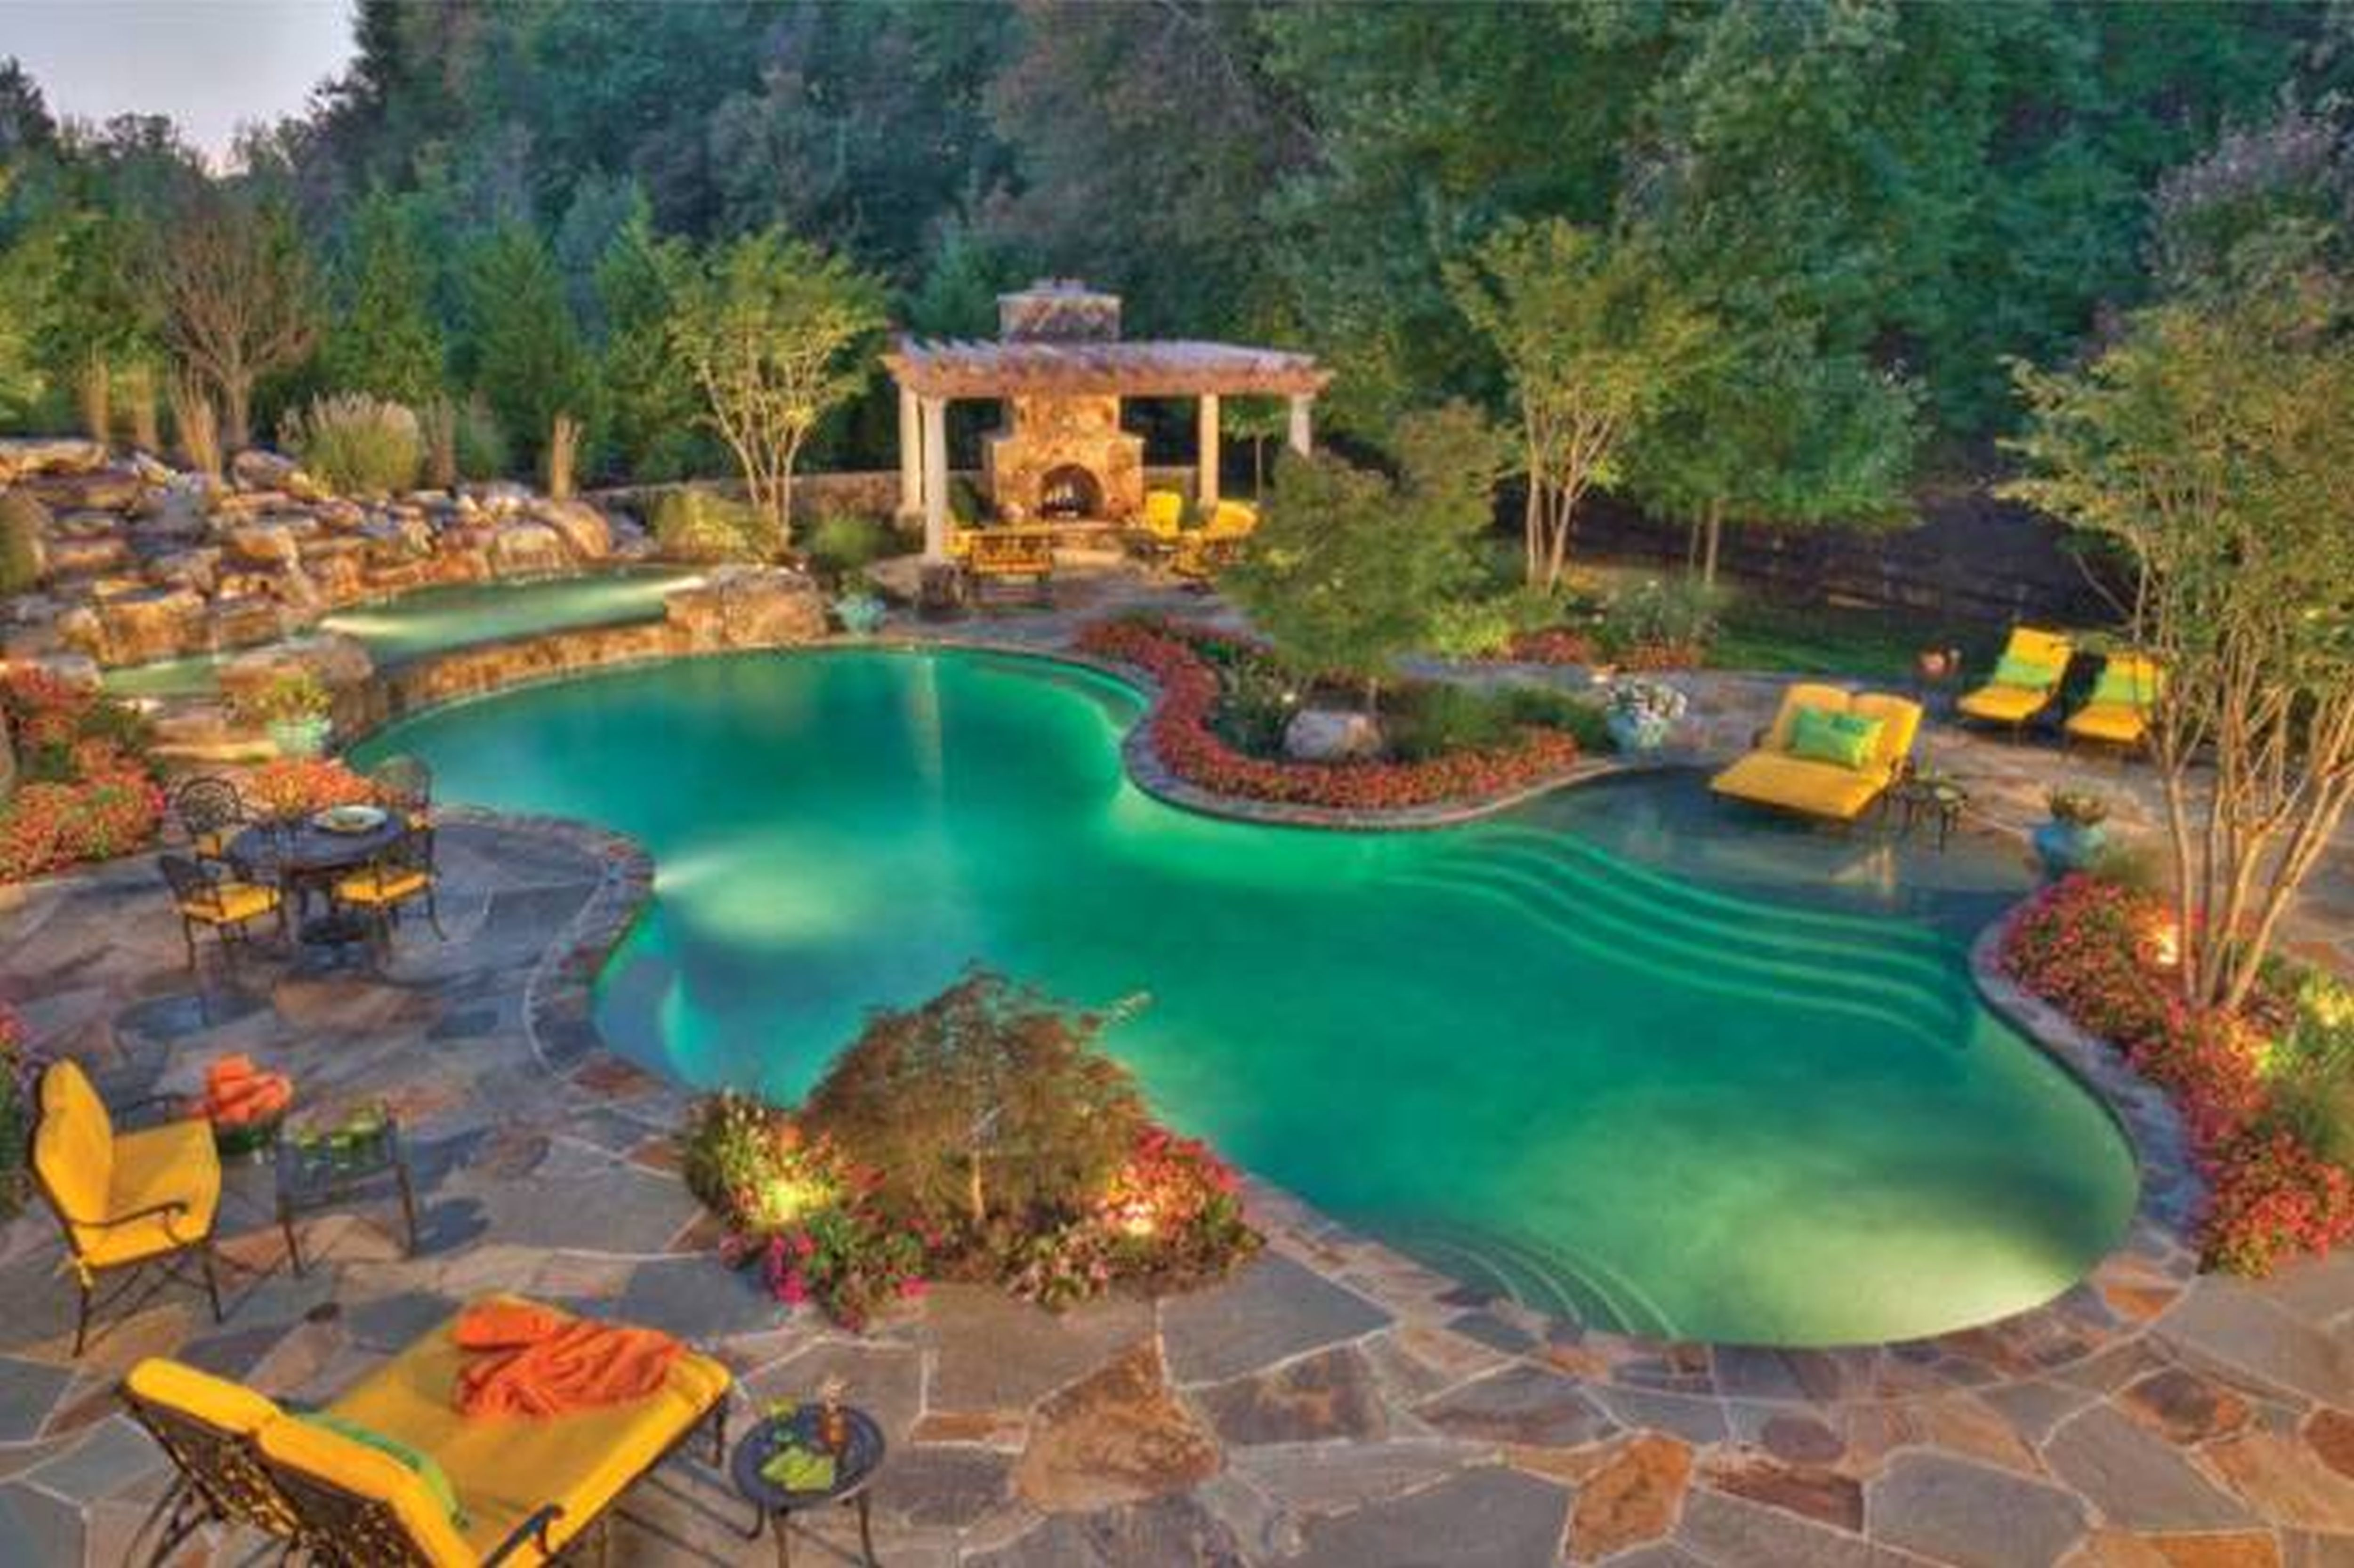 Pool Design Ideas 4 Design Your Home